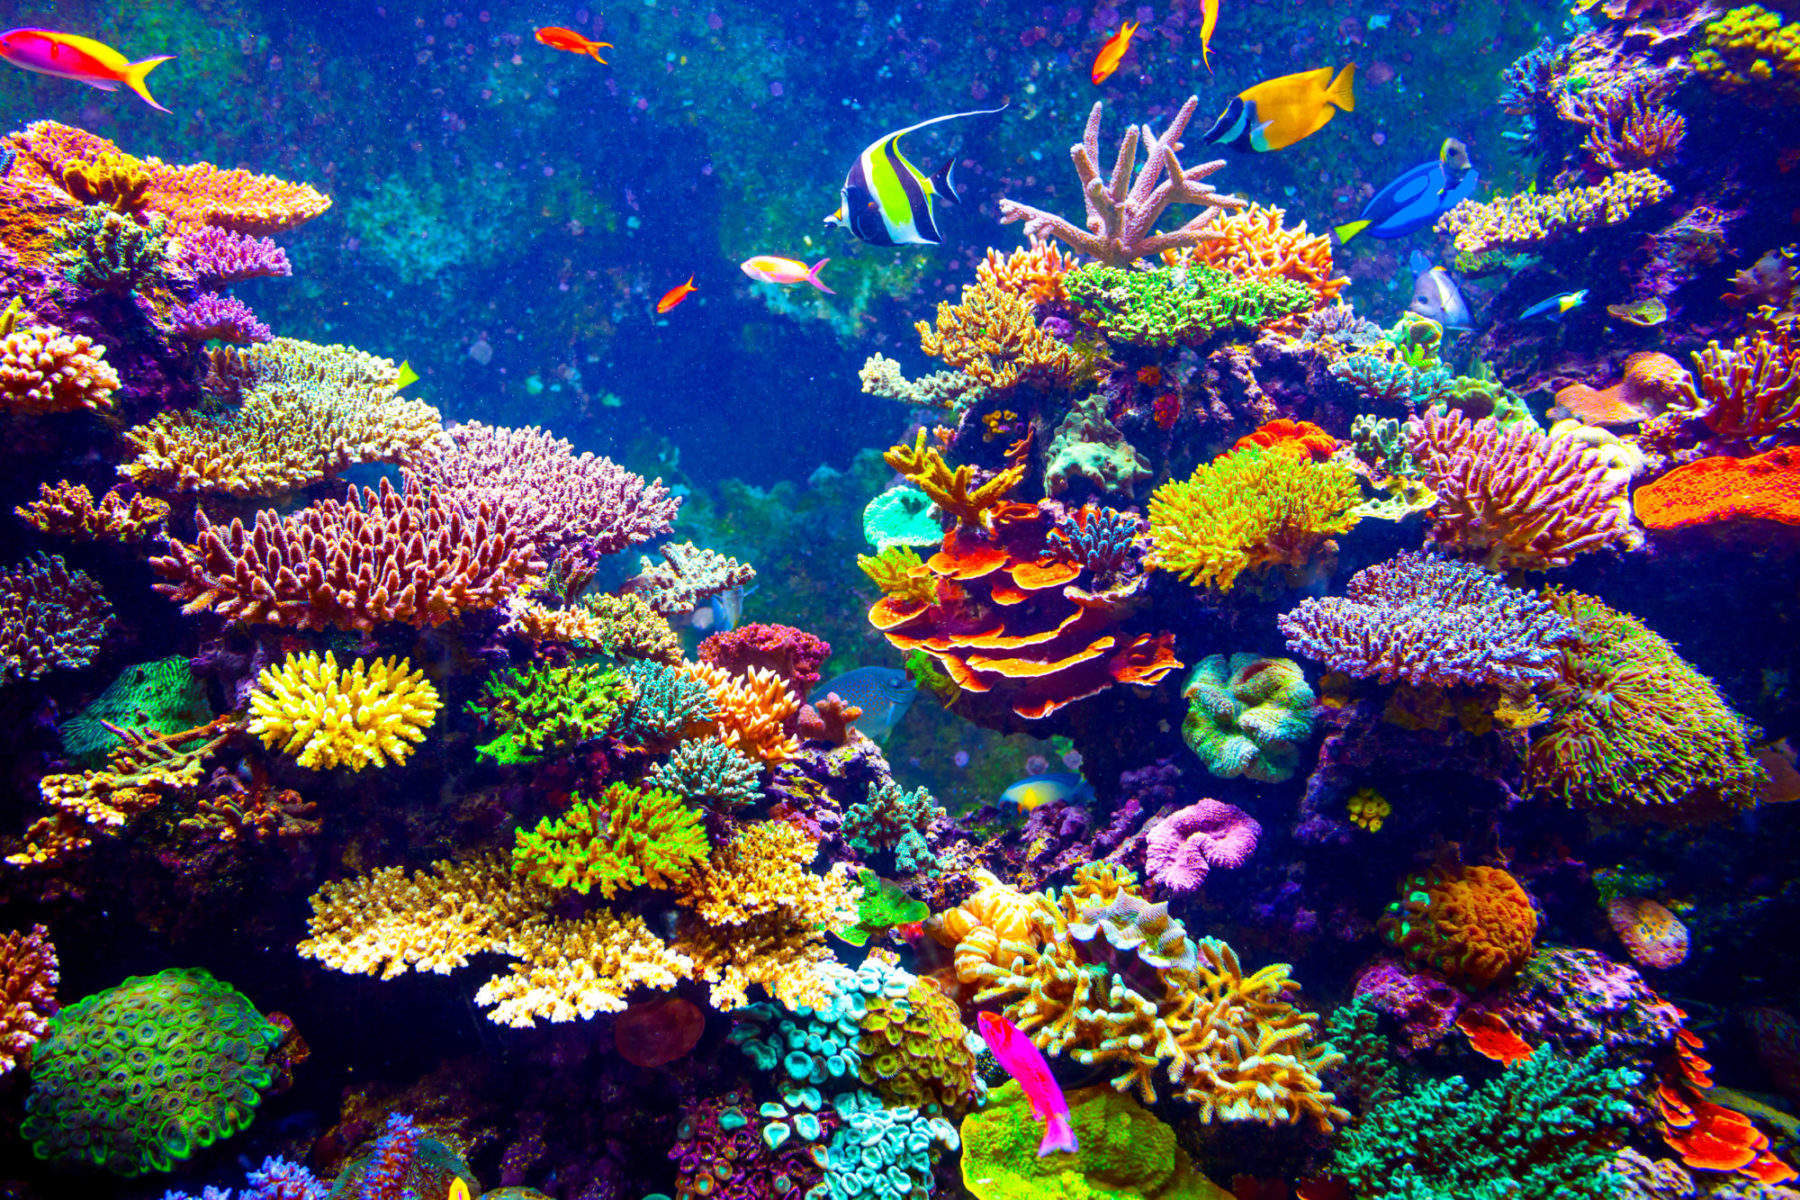 This 3D printed reef could help save the ocean